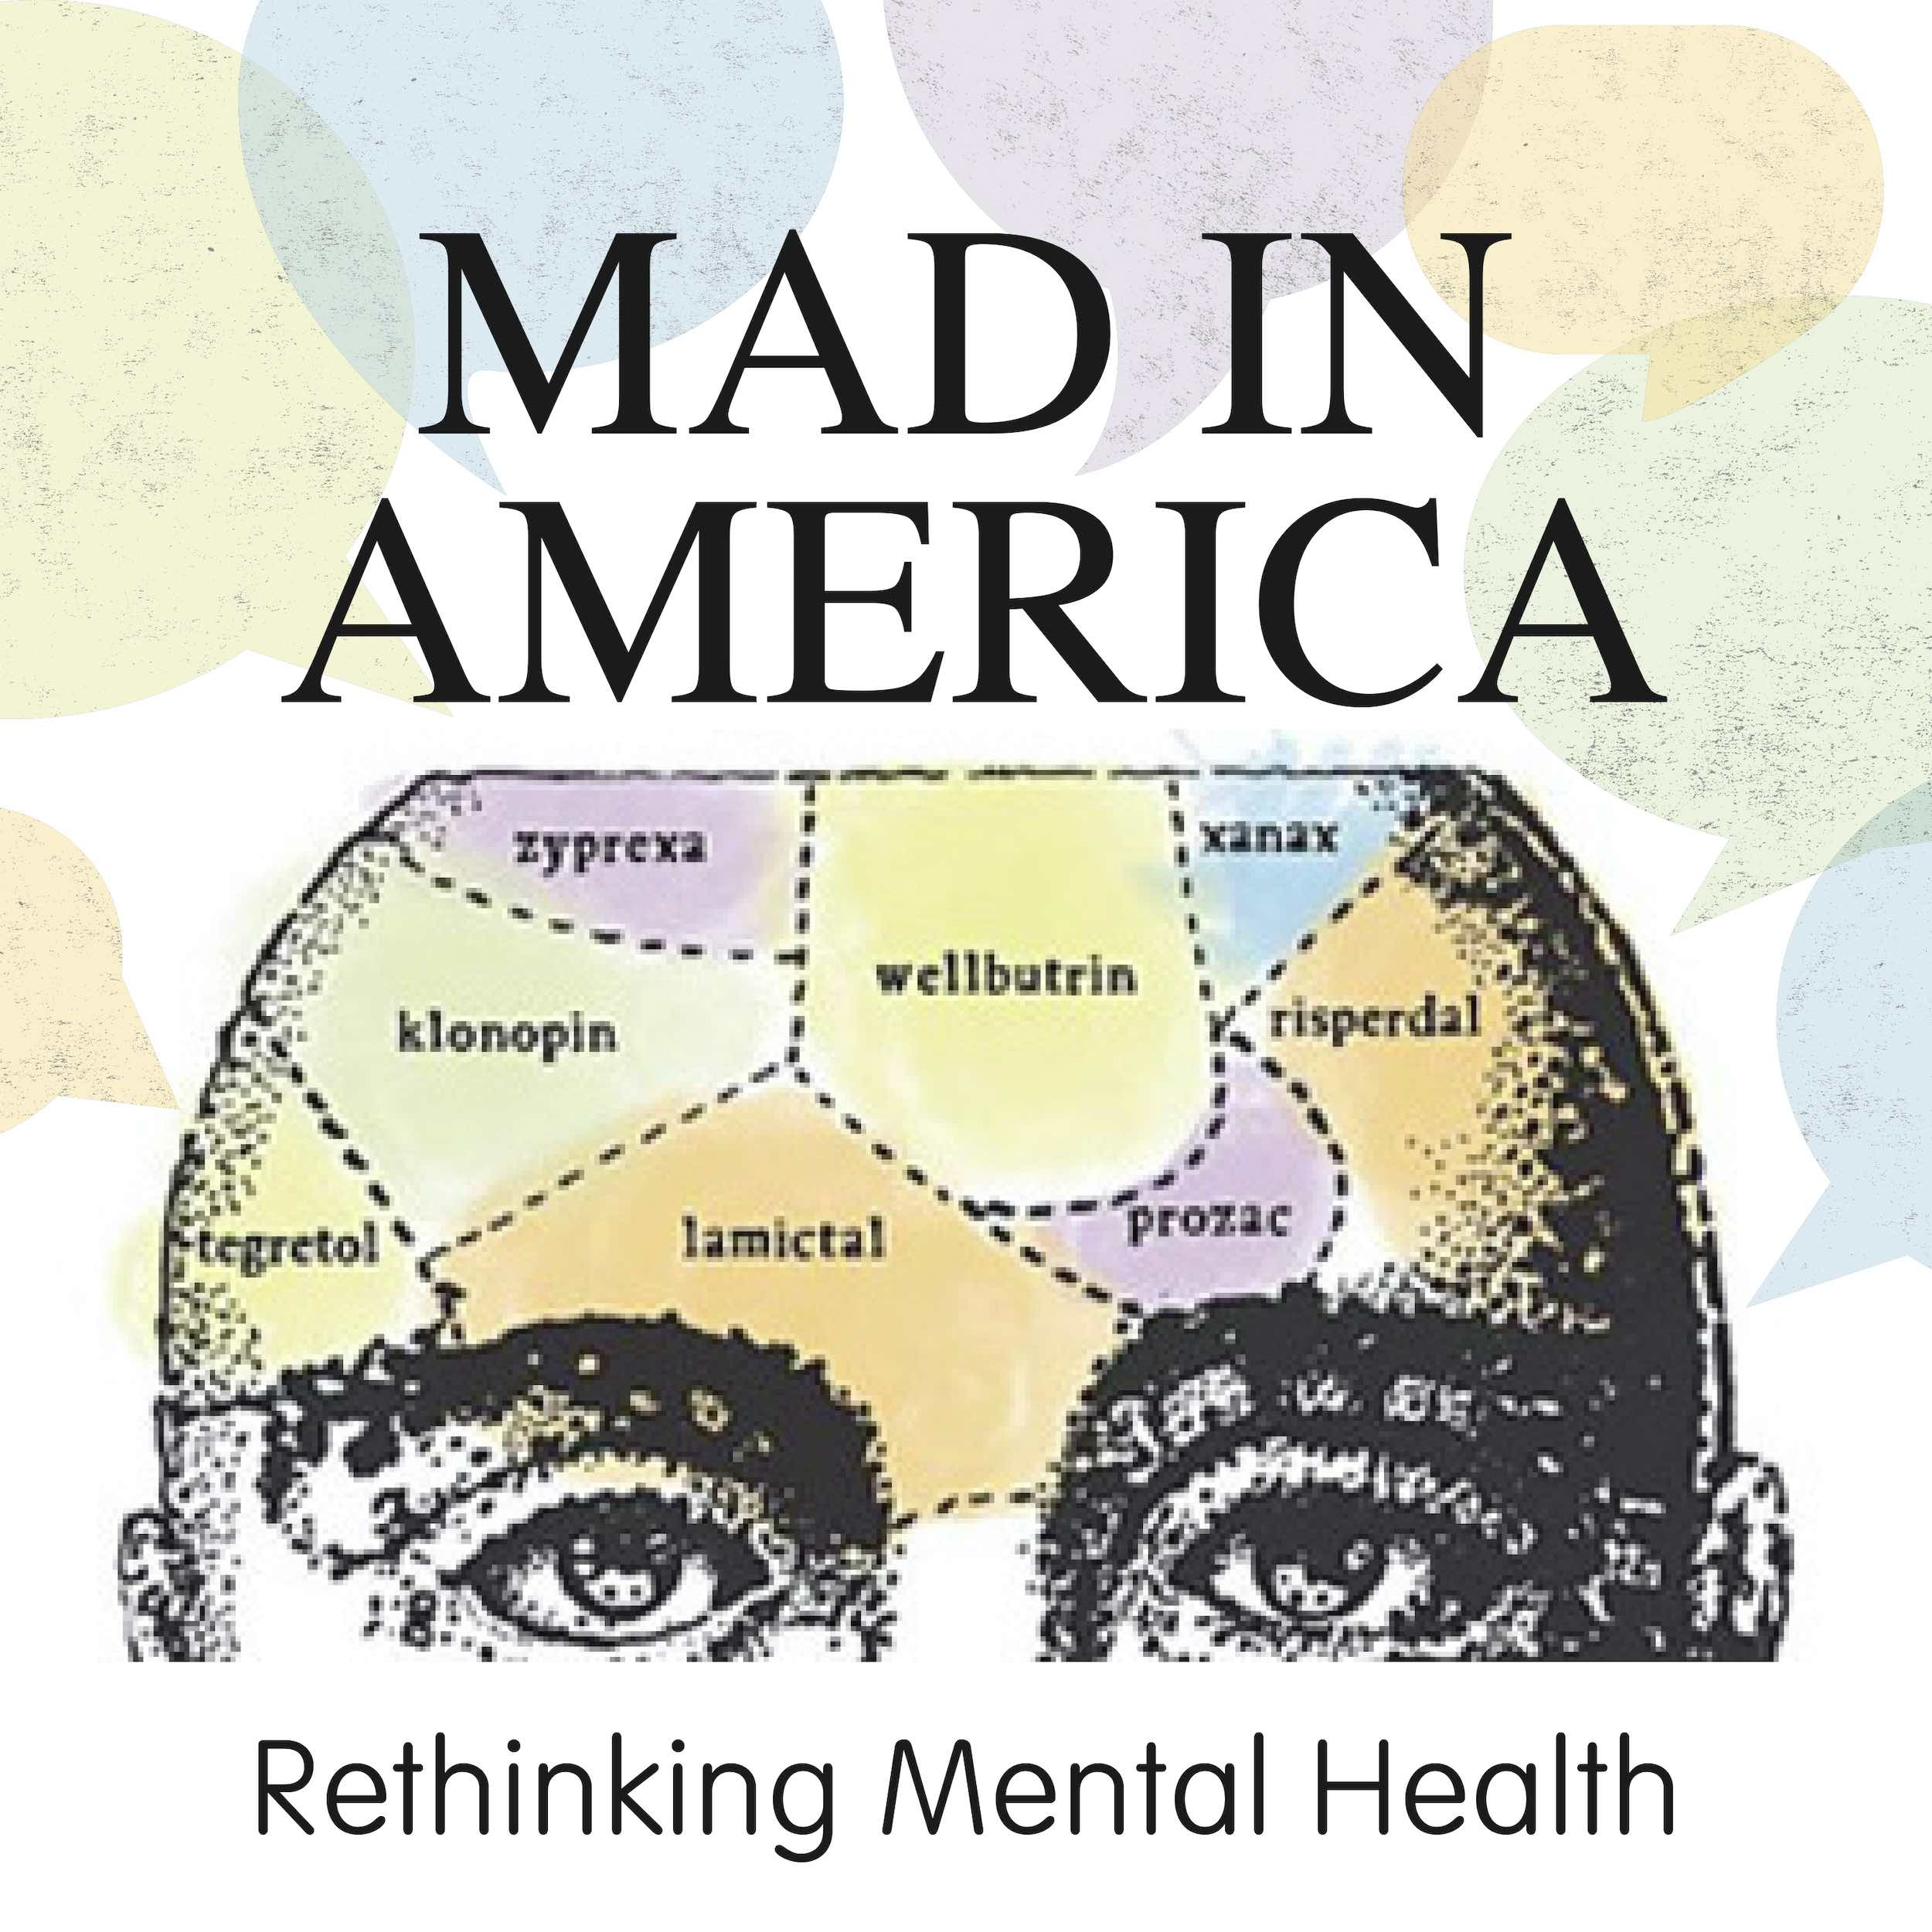 Mad in America: Rethinking Mental Health - John Read and Irving Kirsch – Electroconvulsive Therapy (ECT) Does the Evidence From Clinical Trials Justify its Continued Use?